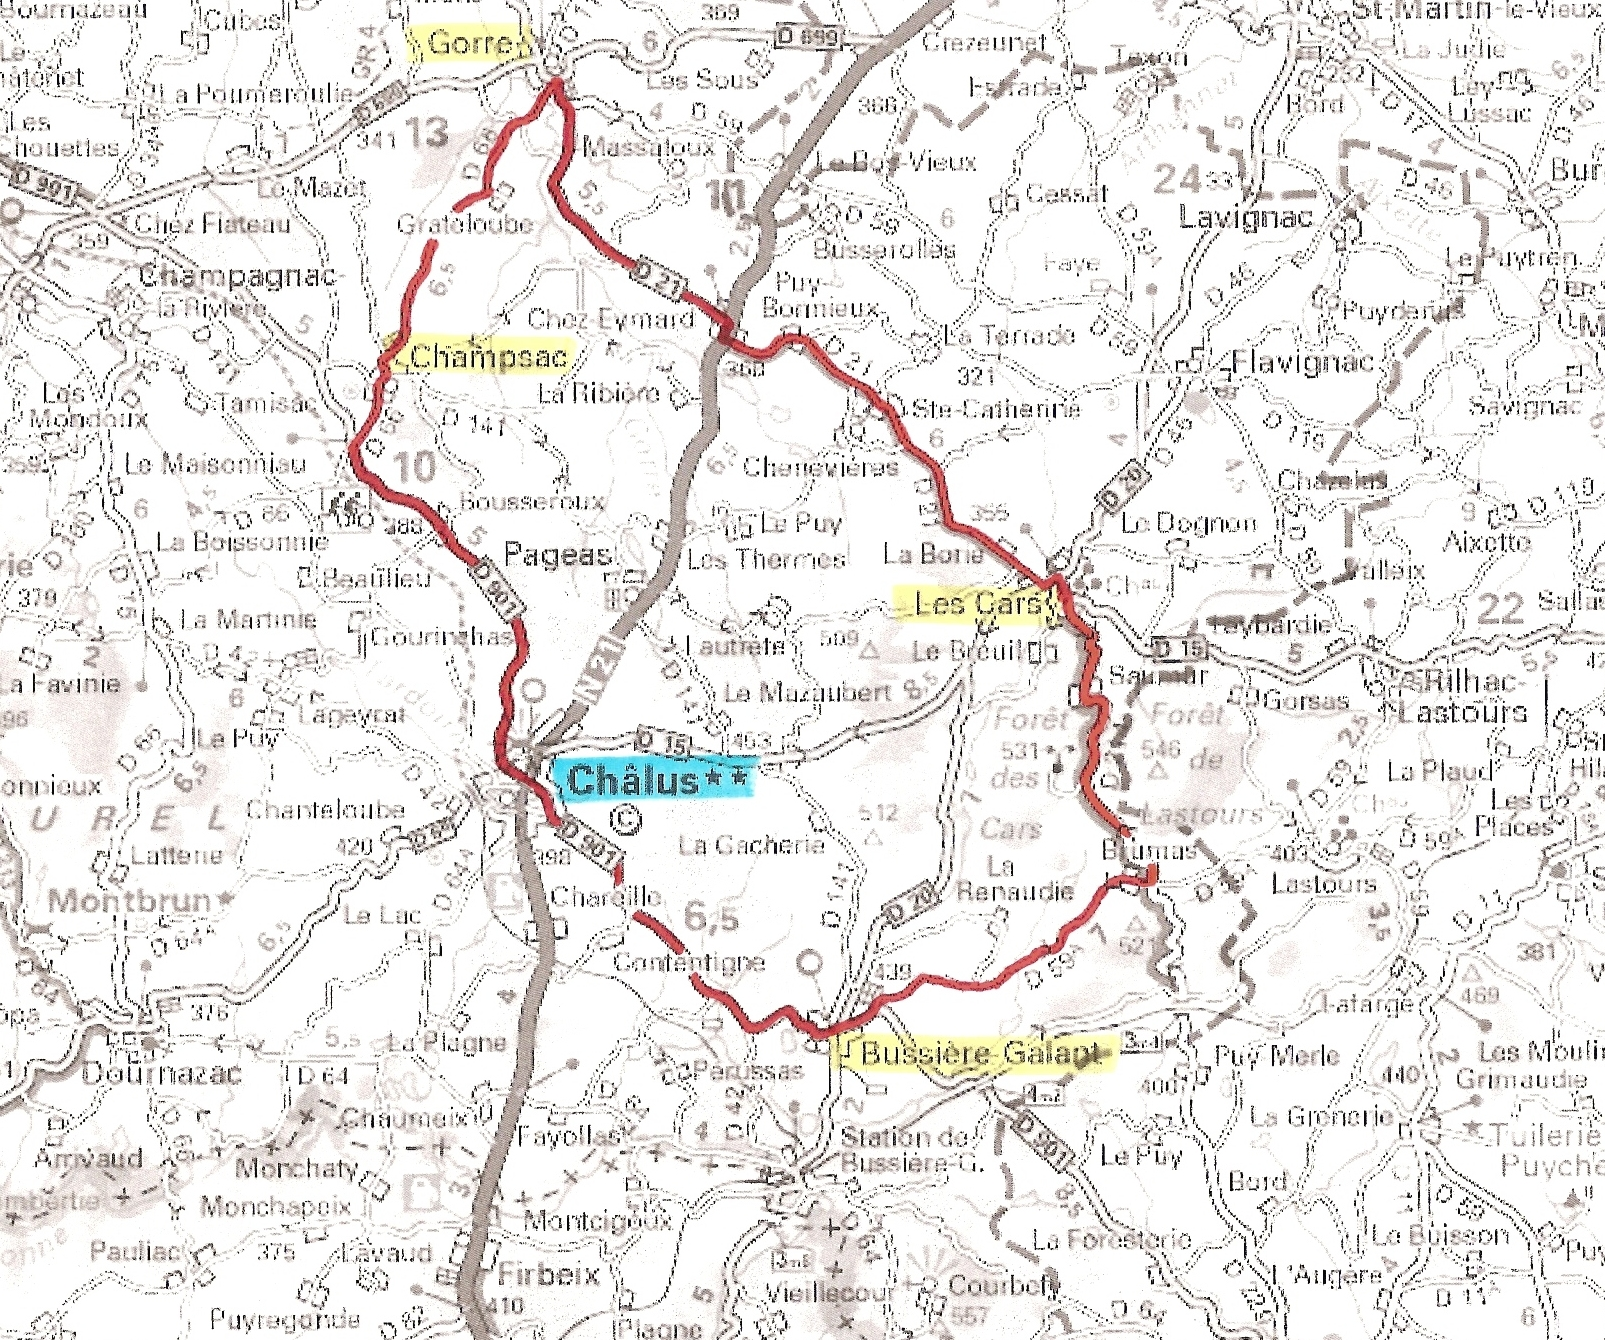 COSEG 0910 CHALUS CHALUS parcours.jpg